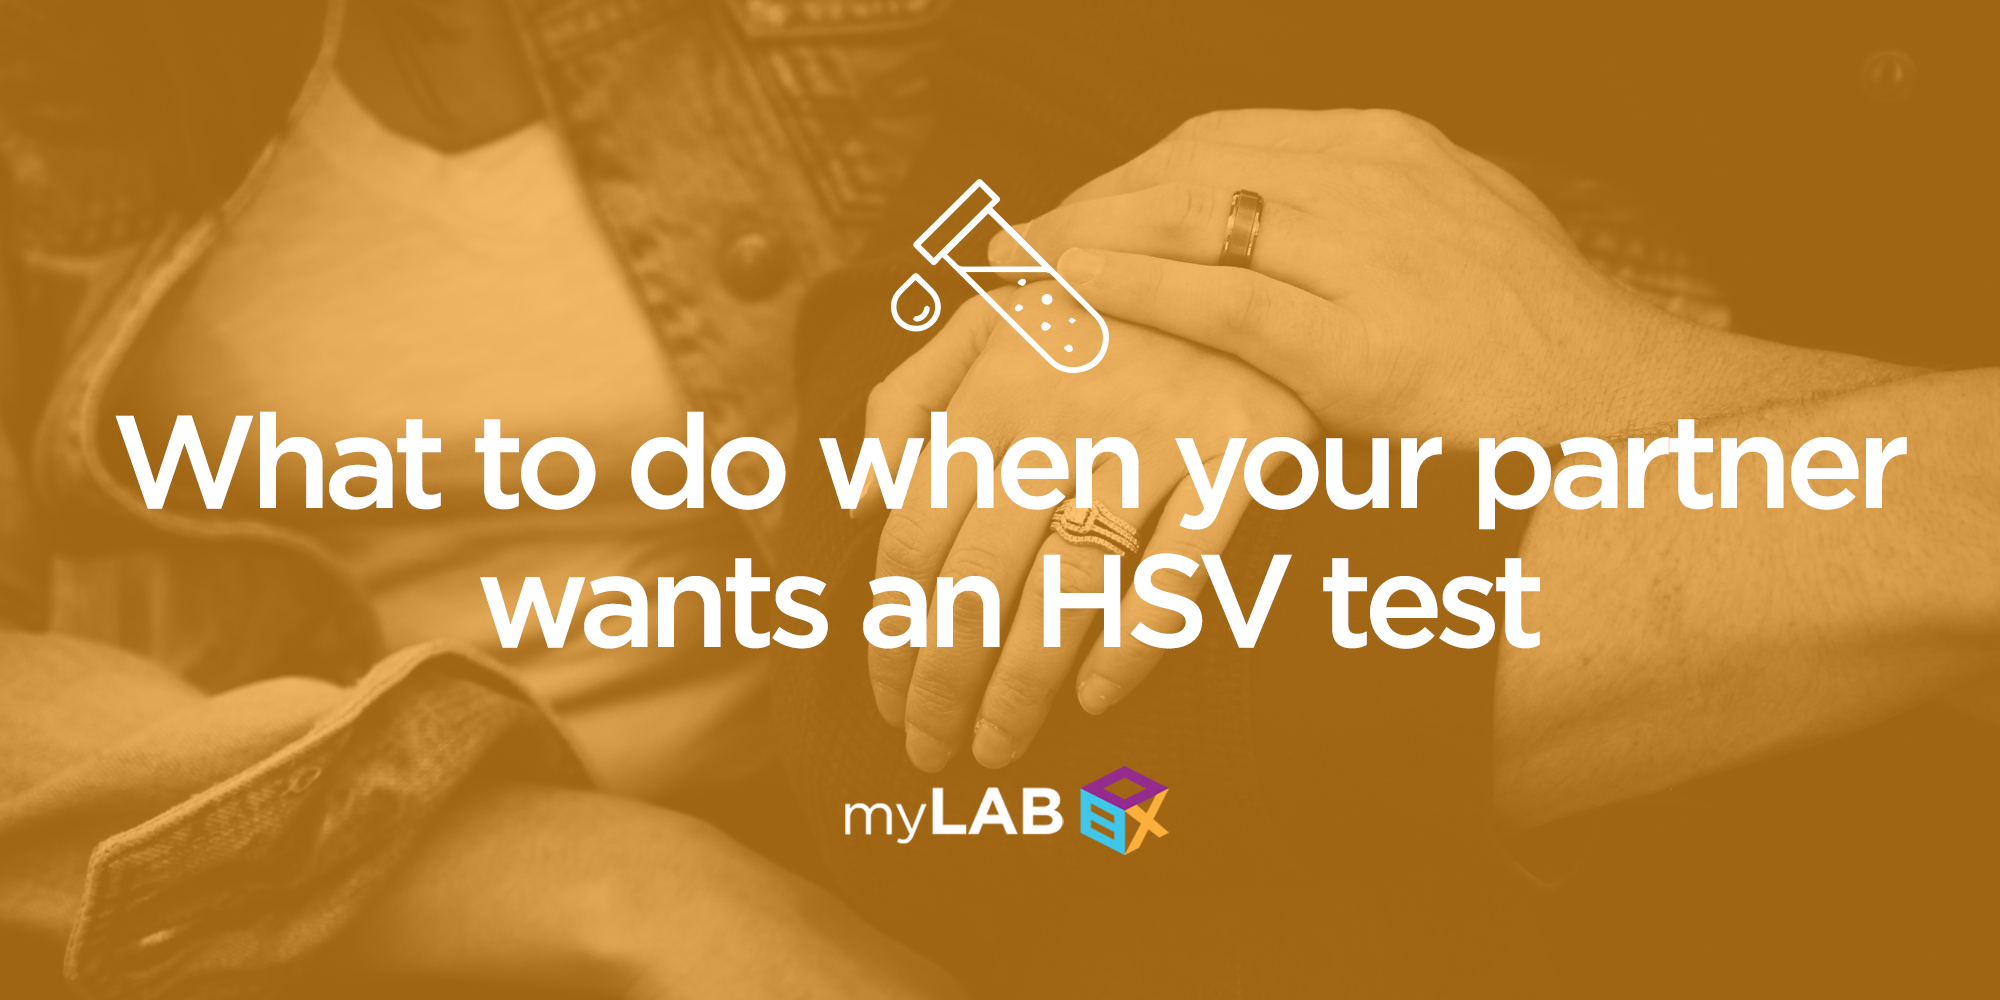 What to do when your partner wants an HSV test